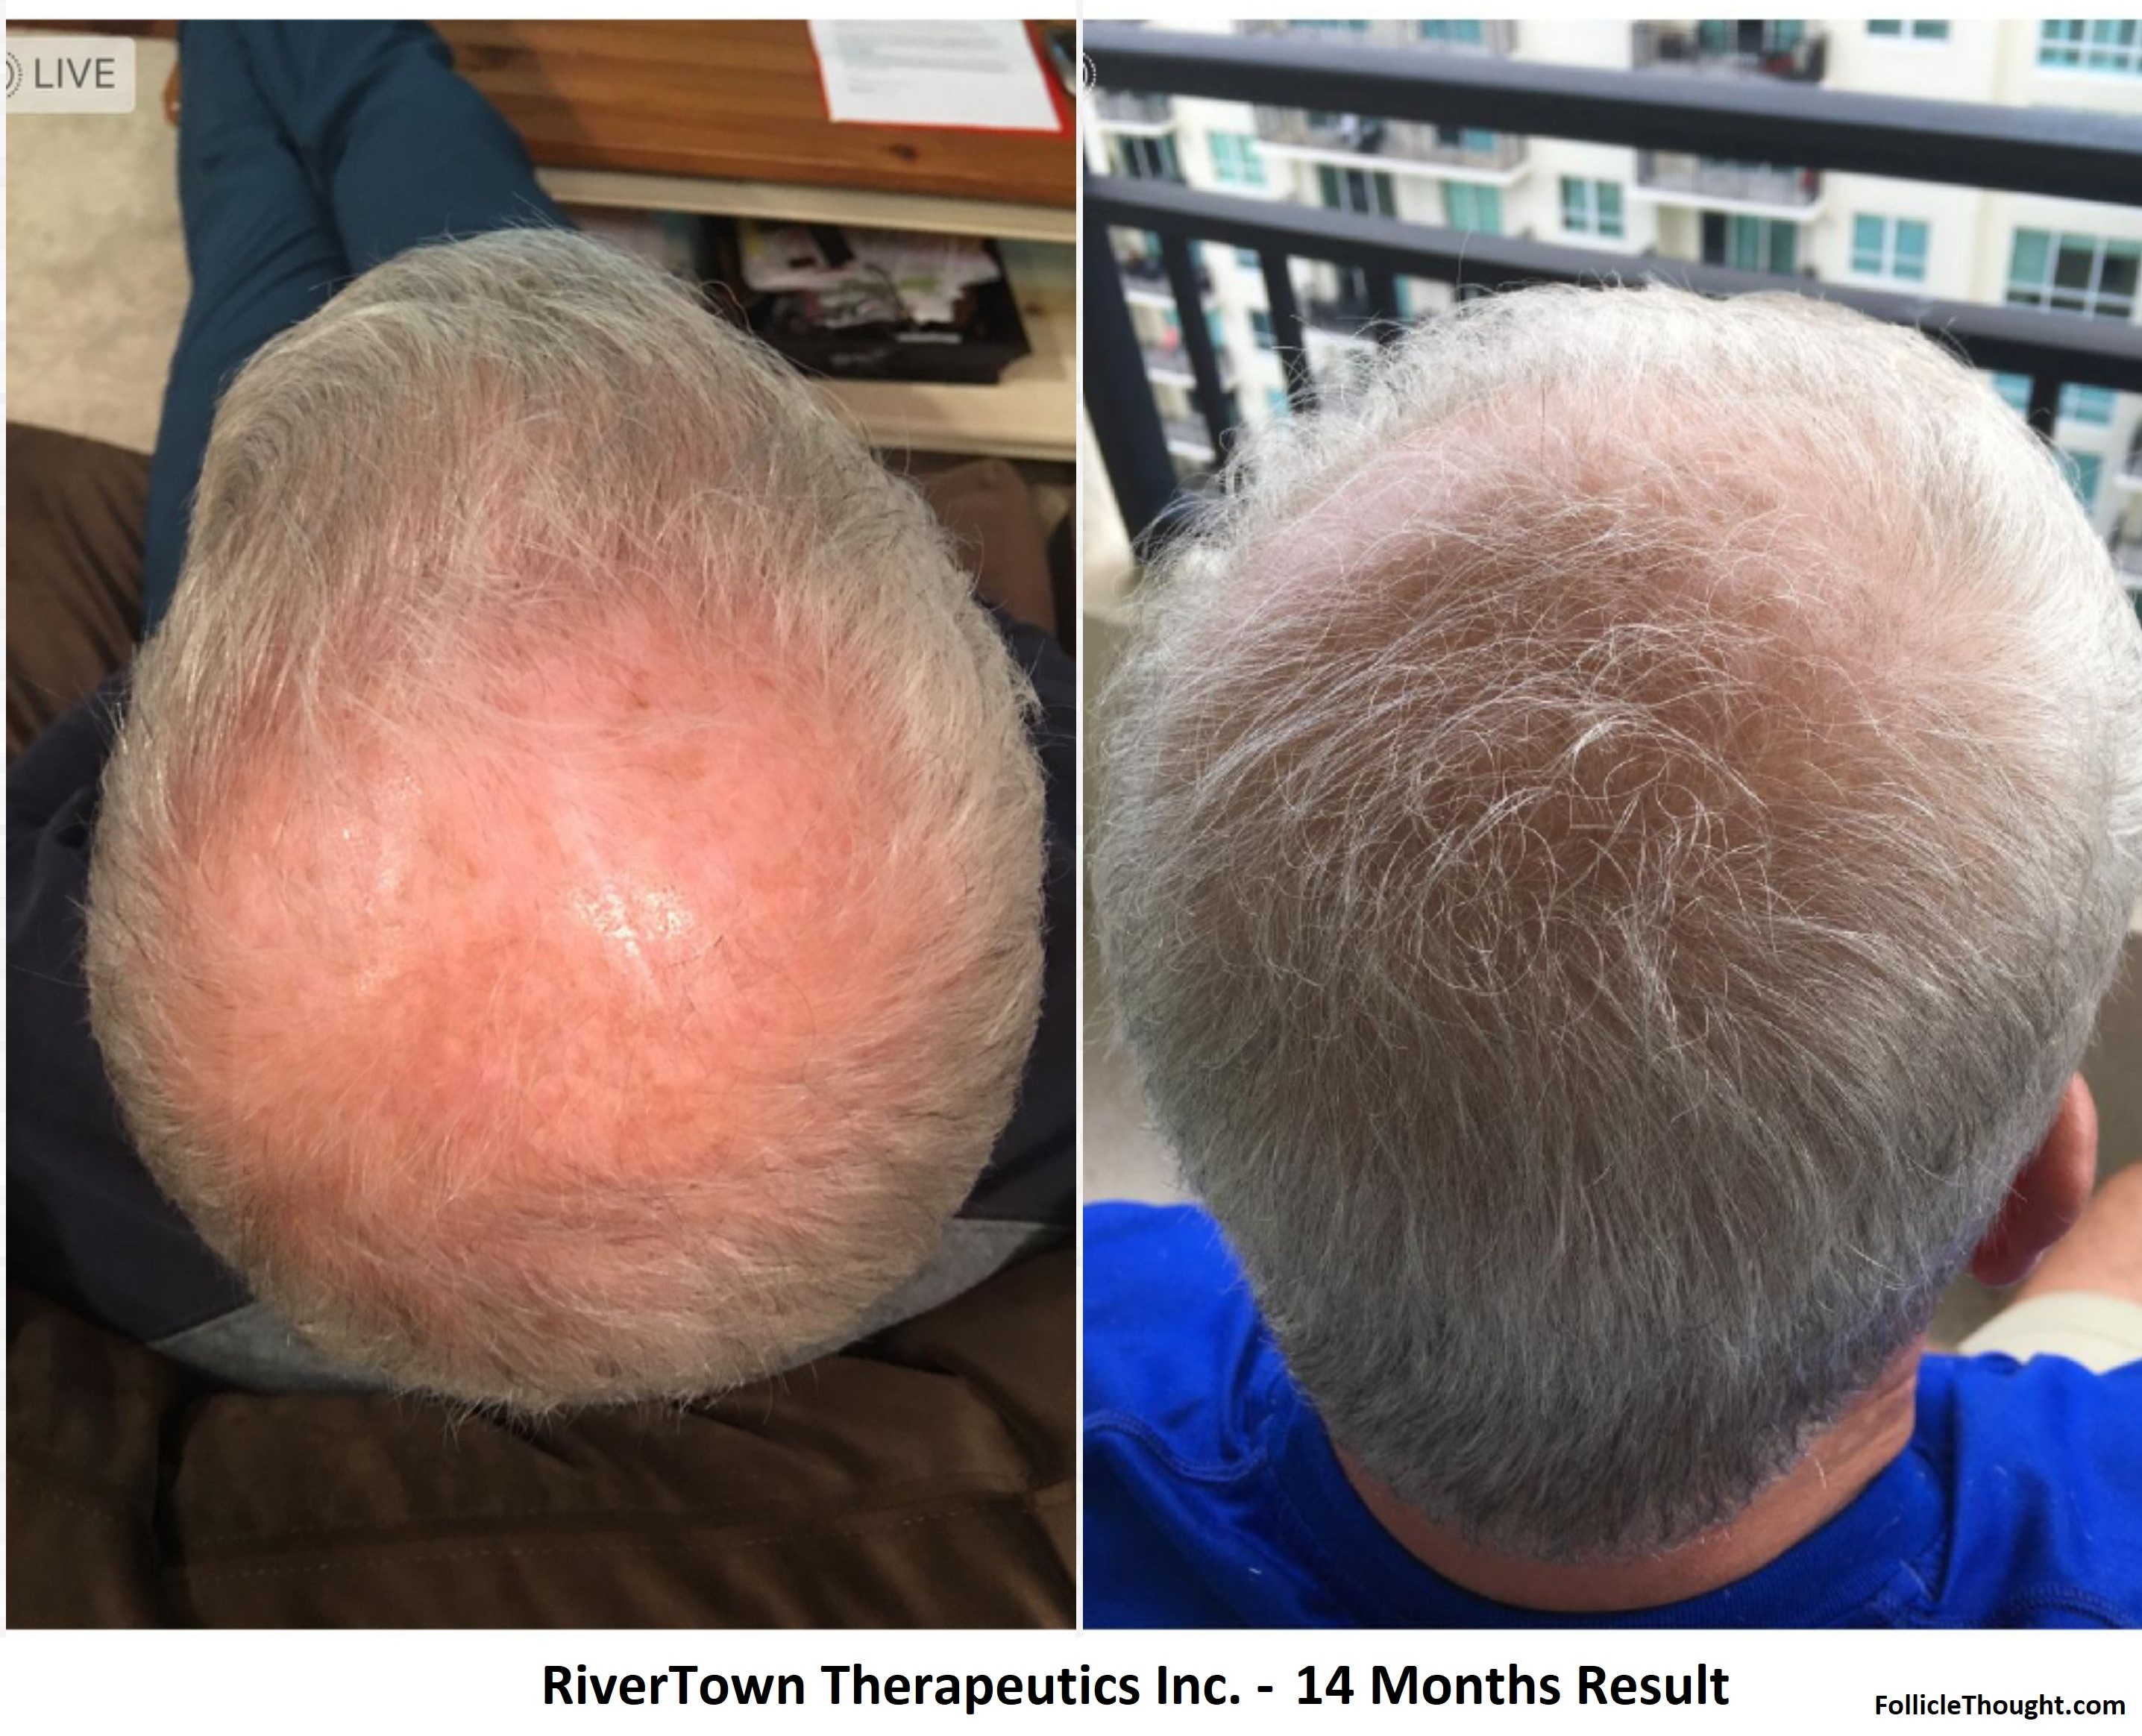 RiverTown: More Results | Follicle Thought